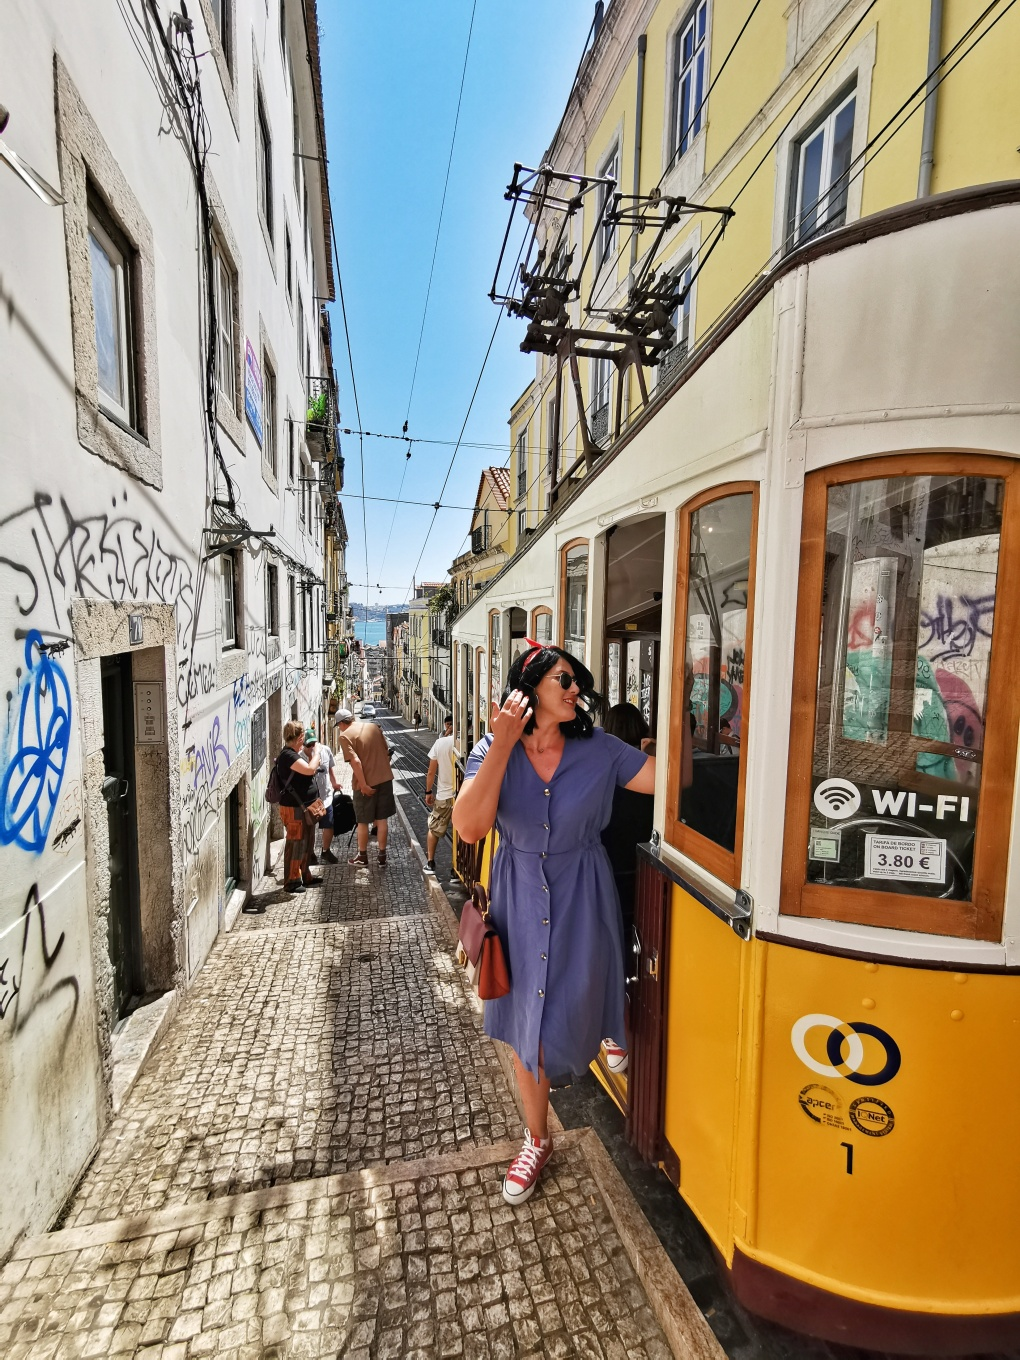 typicalLisbonPhoto_ascensordaBica_lisboa_portugal